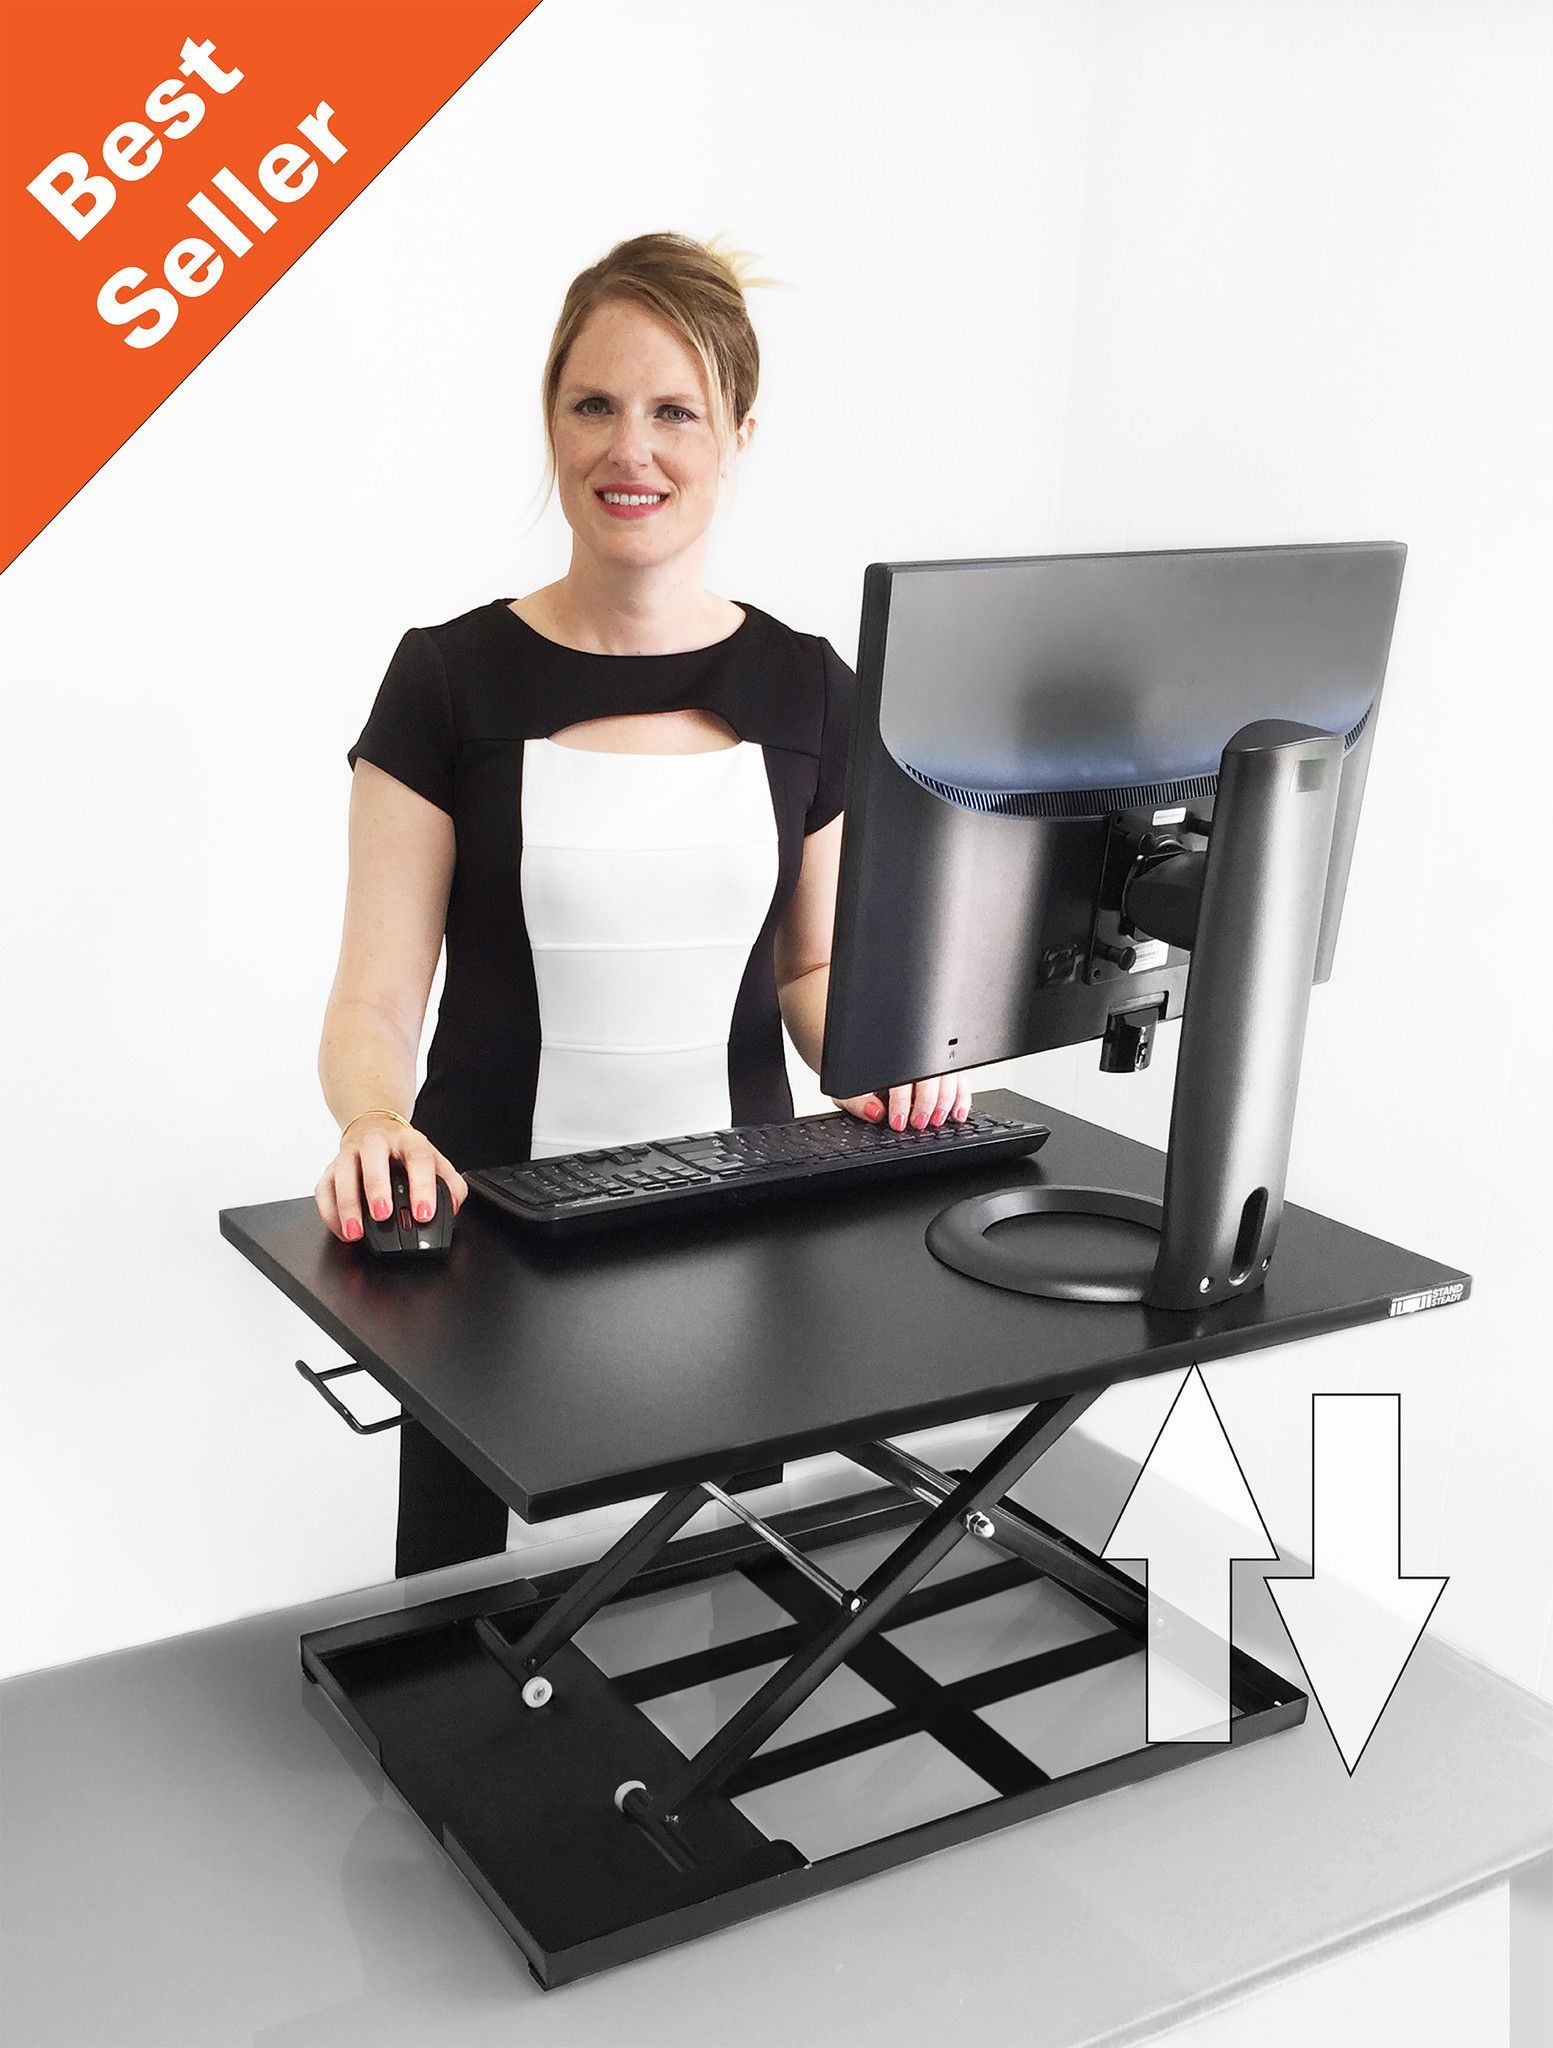 new dietasdeadelgazar desk standing of georgiabraintrain stand sit converter to best puter